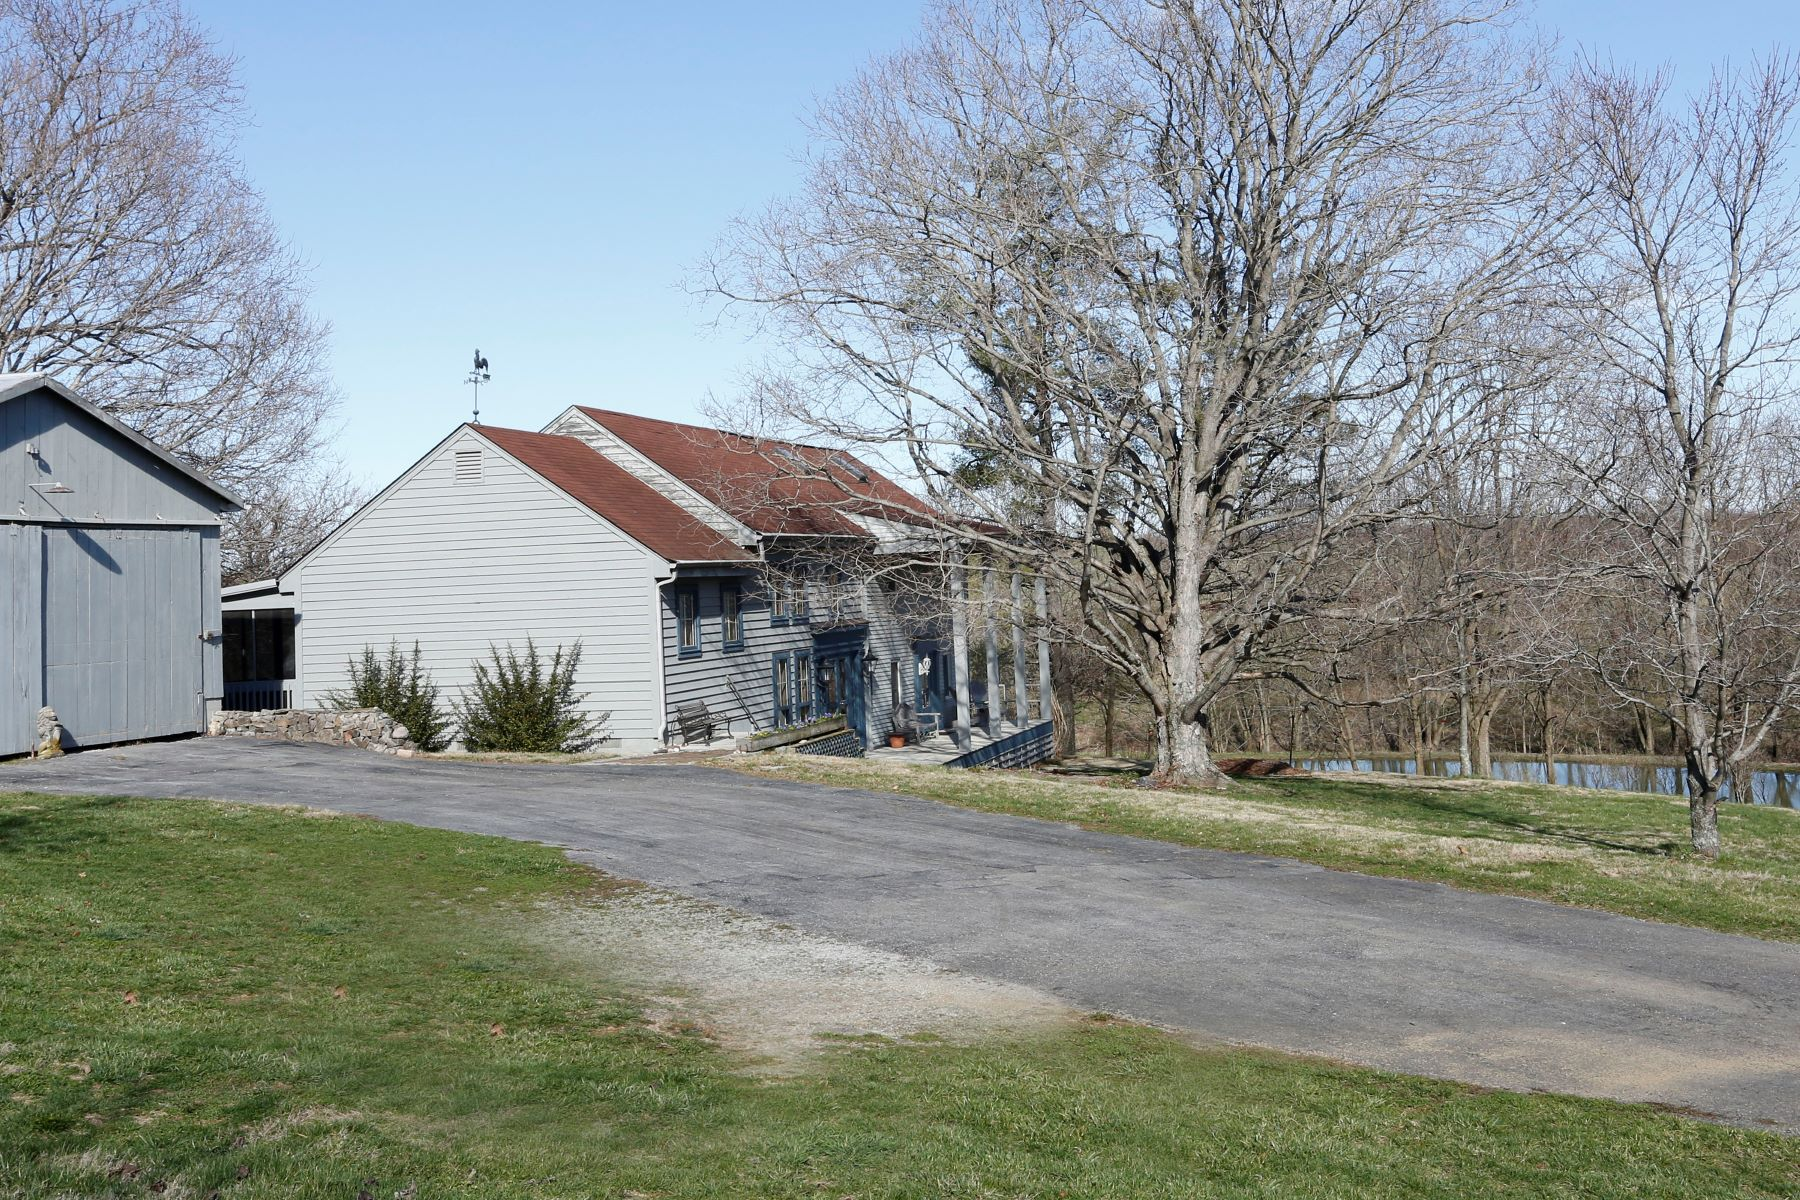 Single Family Home for Sale at 4453 Pleasant Springs Rd Carlisle, Kentucky 40311 United States